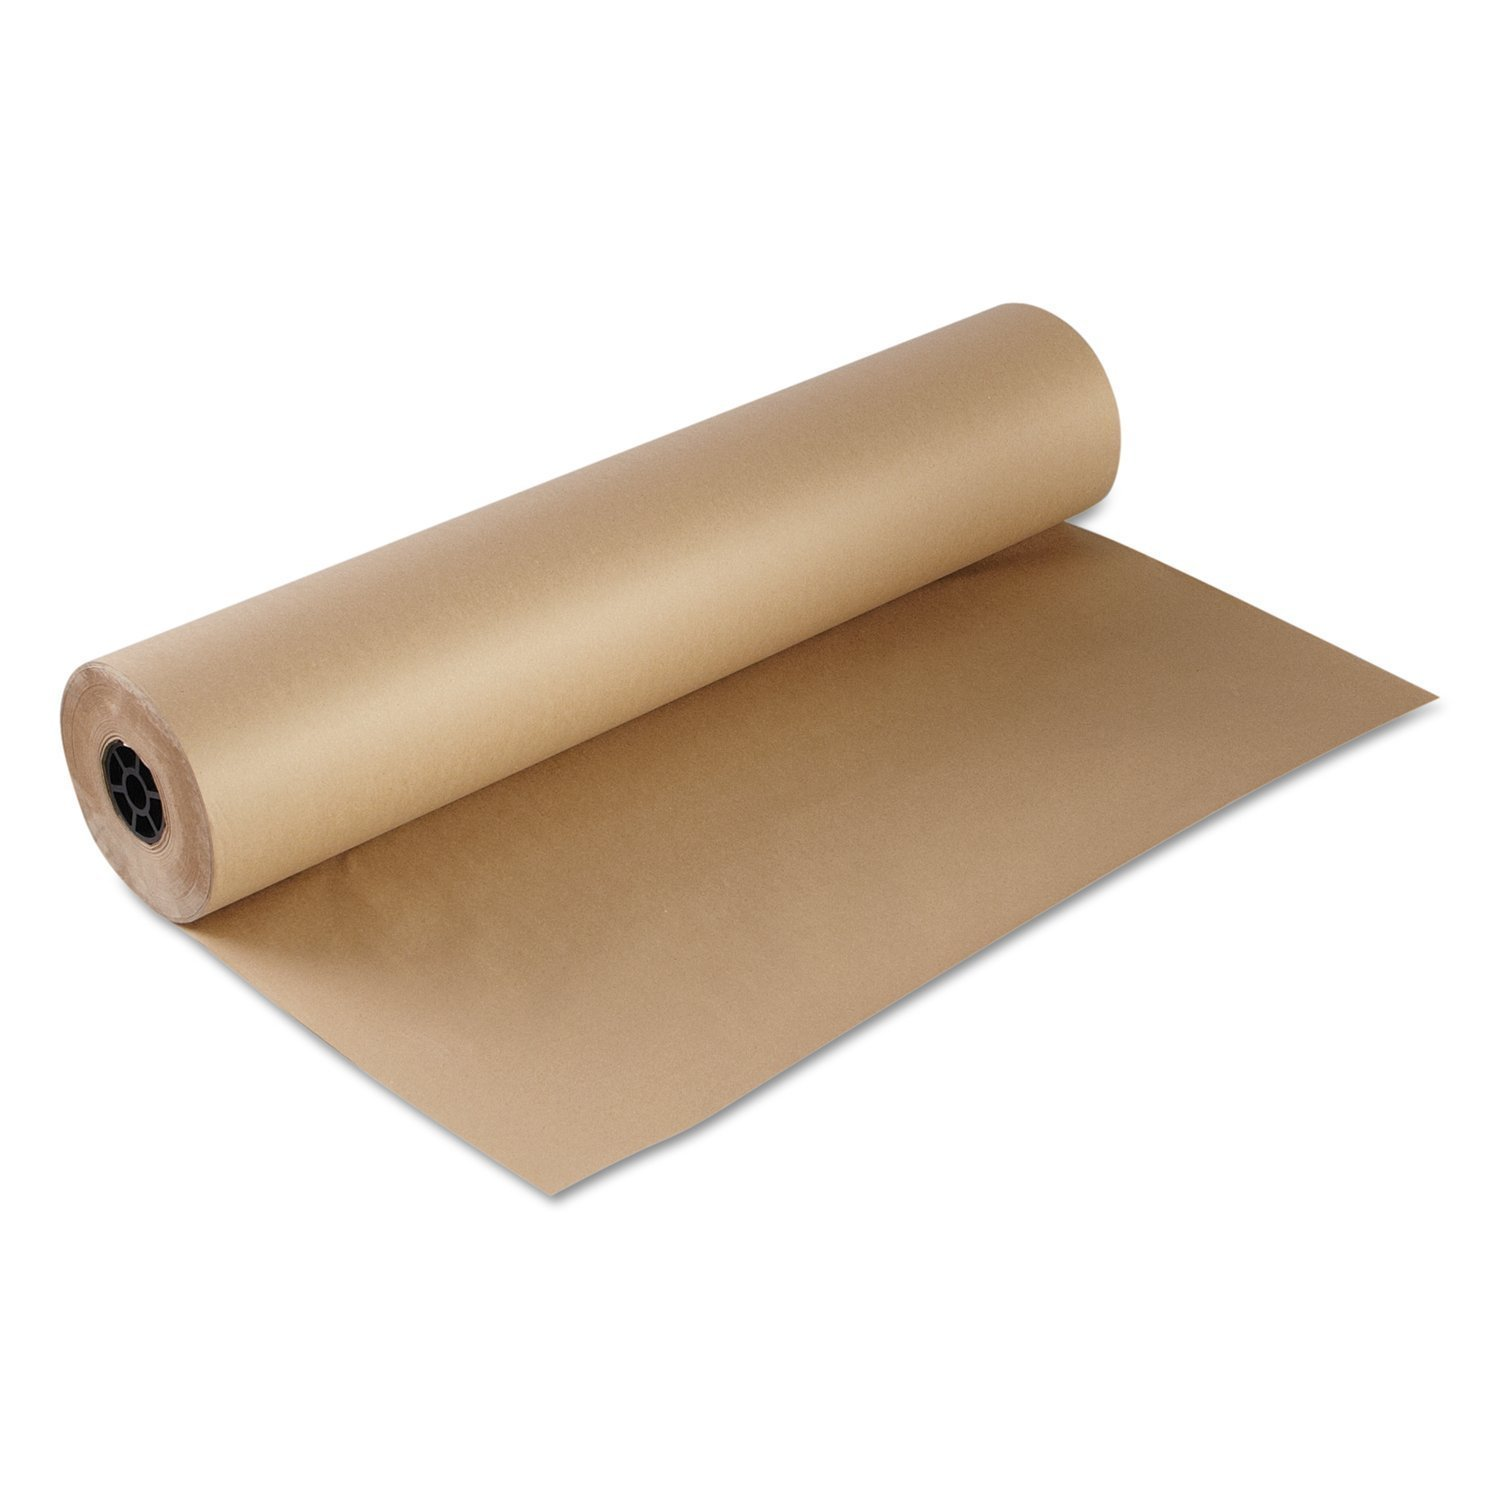 Brown 36 in x 765 ft ValueMailers Kraft Paper Packaging Wrapping Paper